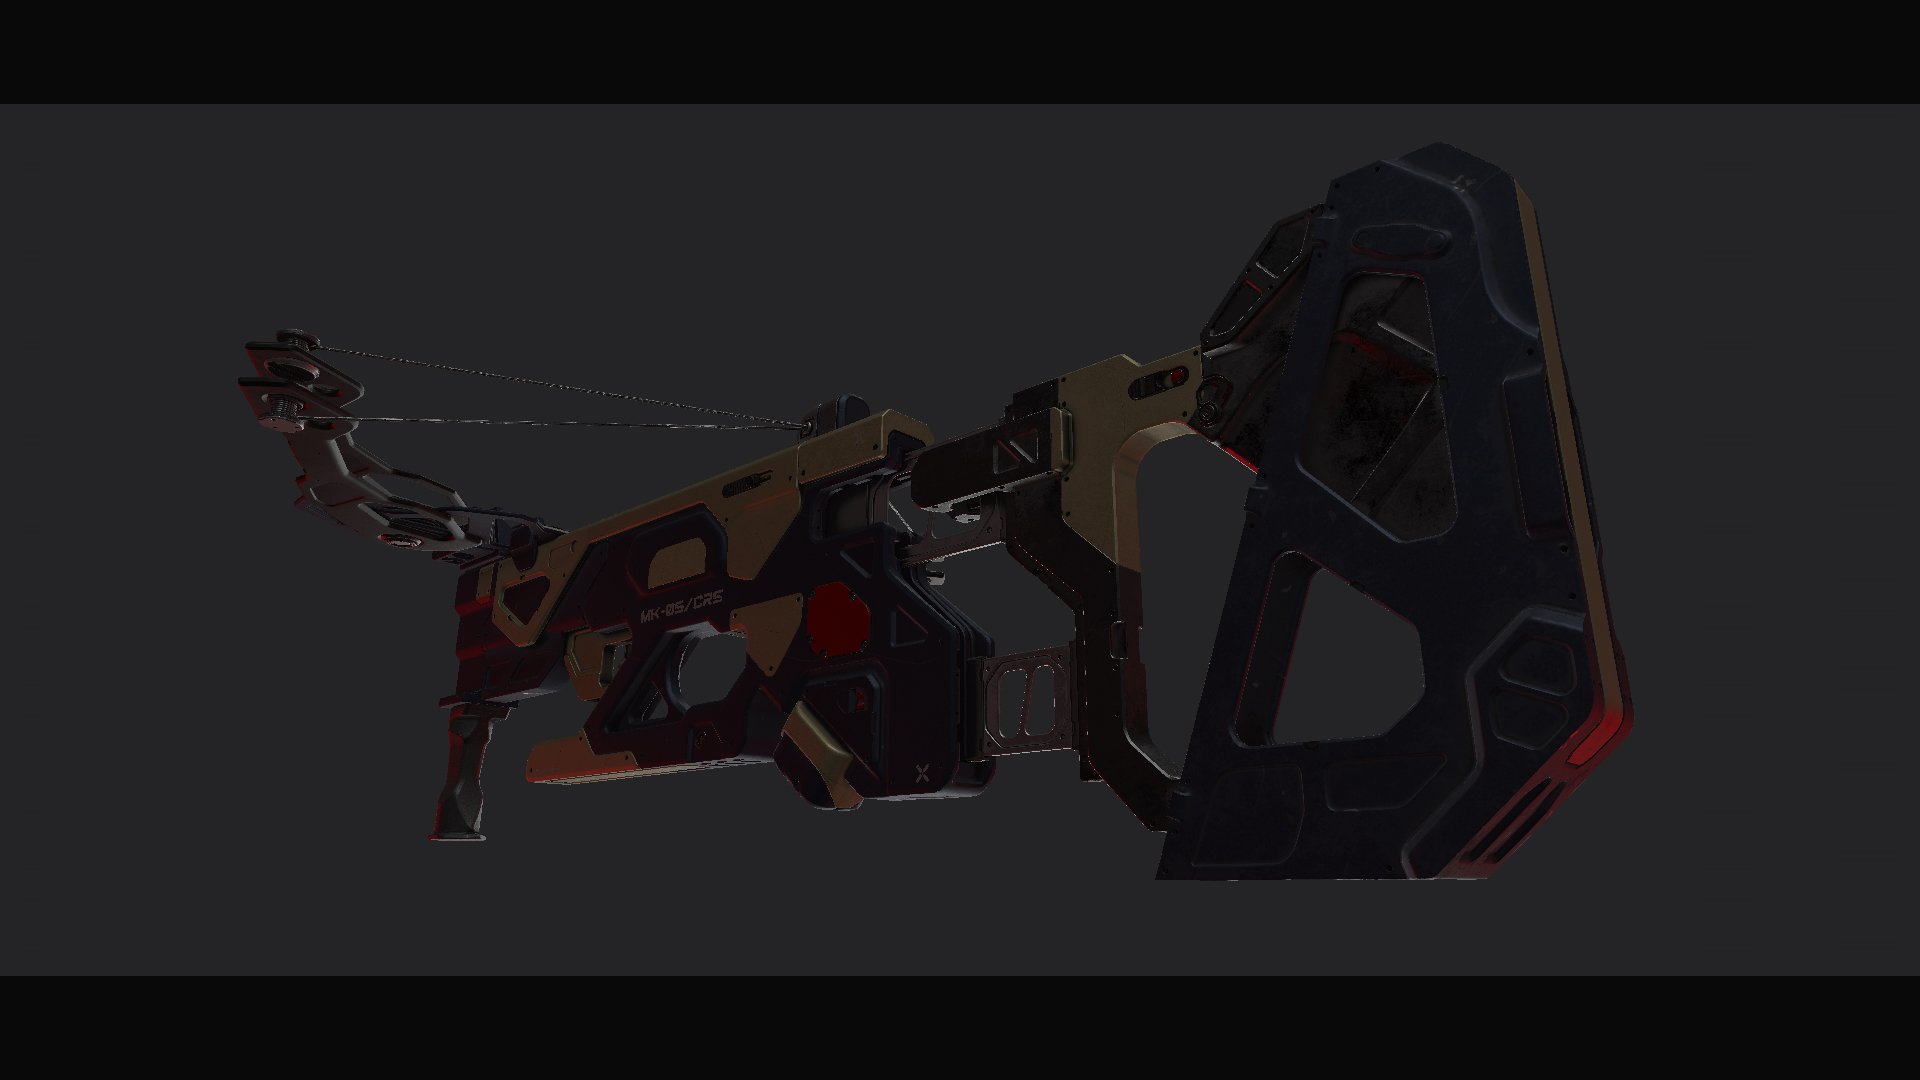 Three D Guns 2 / MK_05/CRS - Futuristic Crossbow